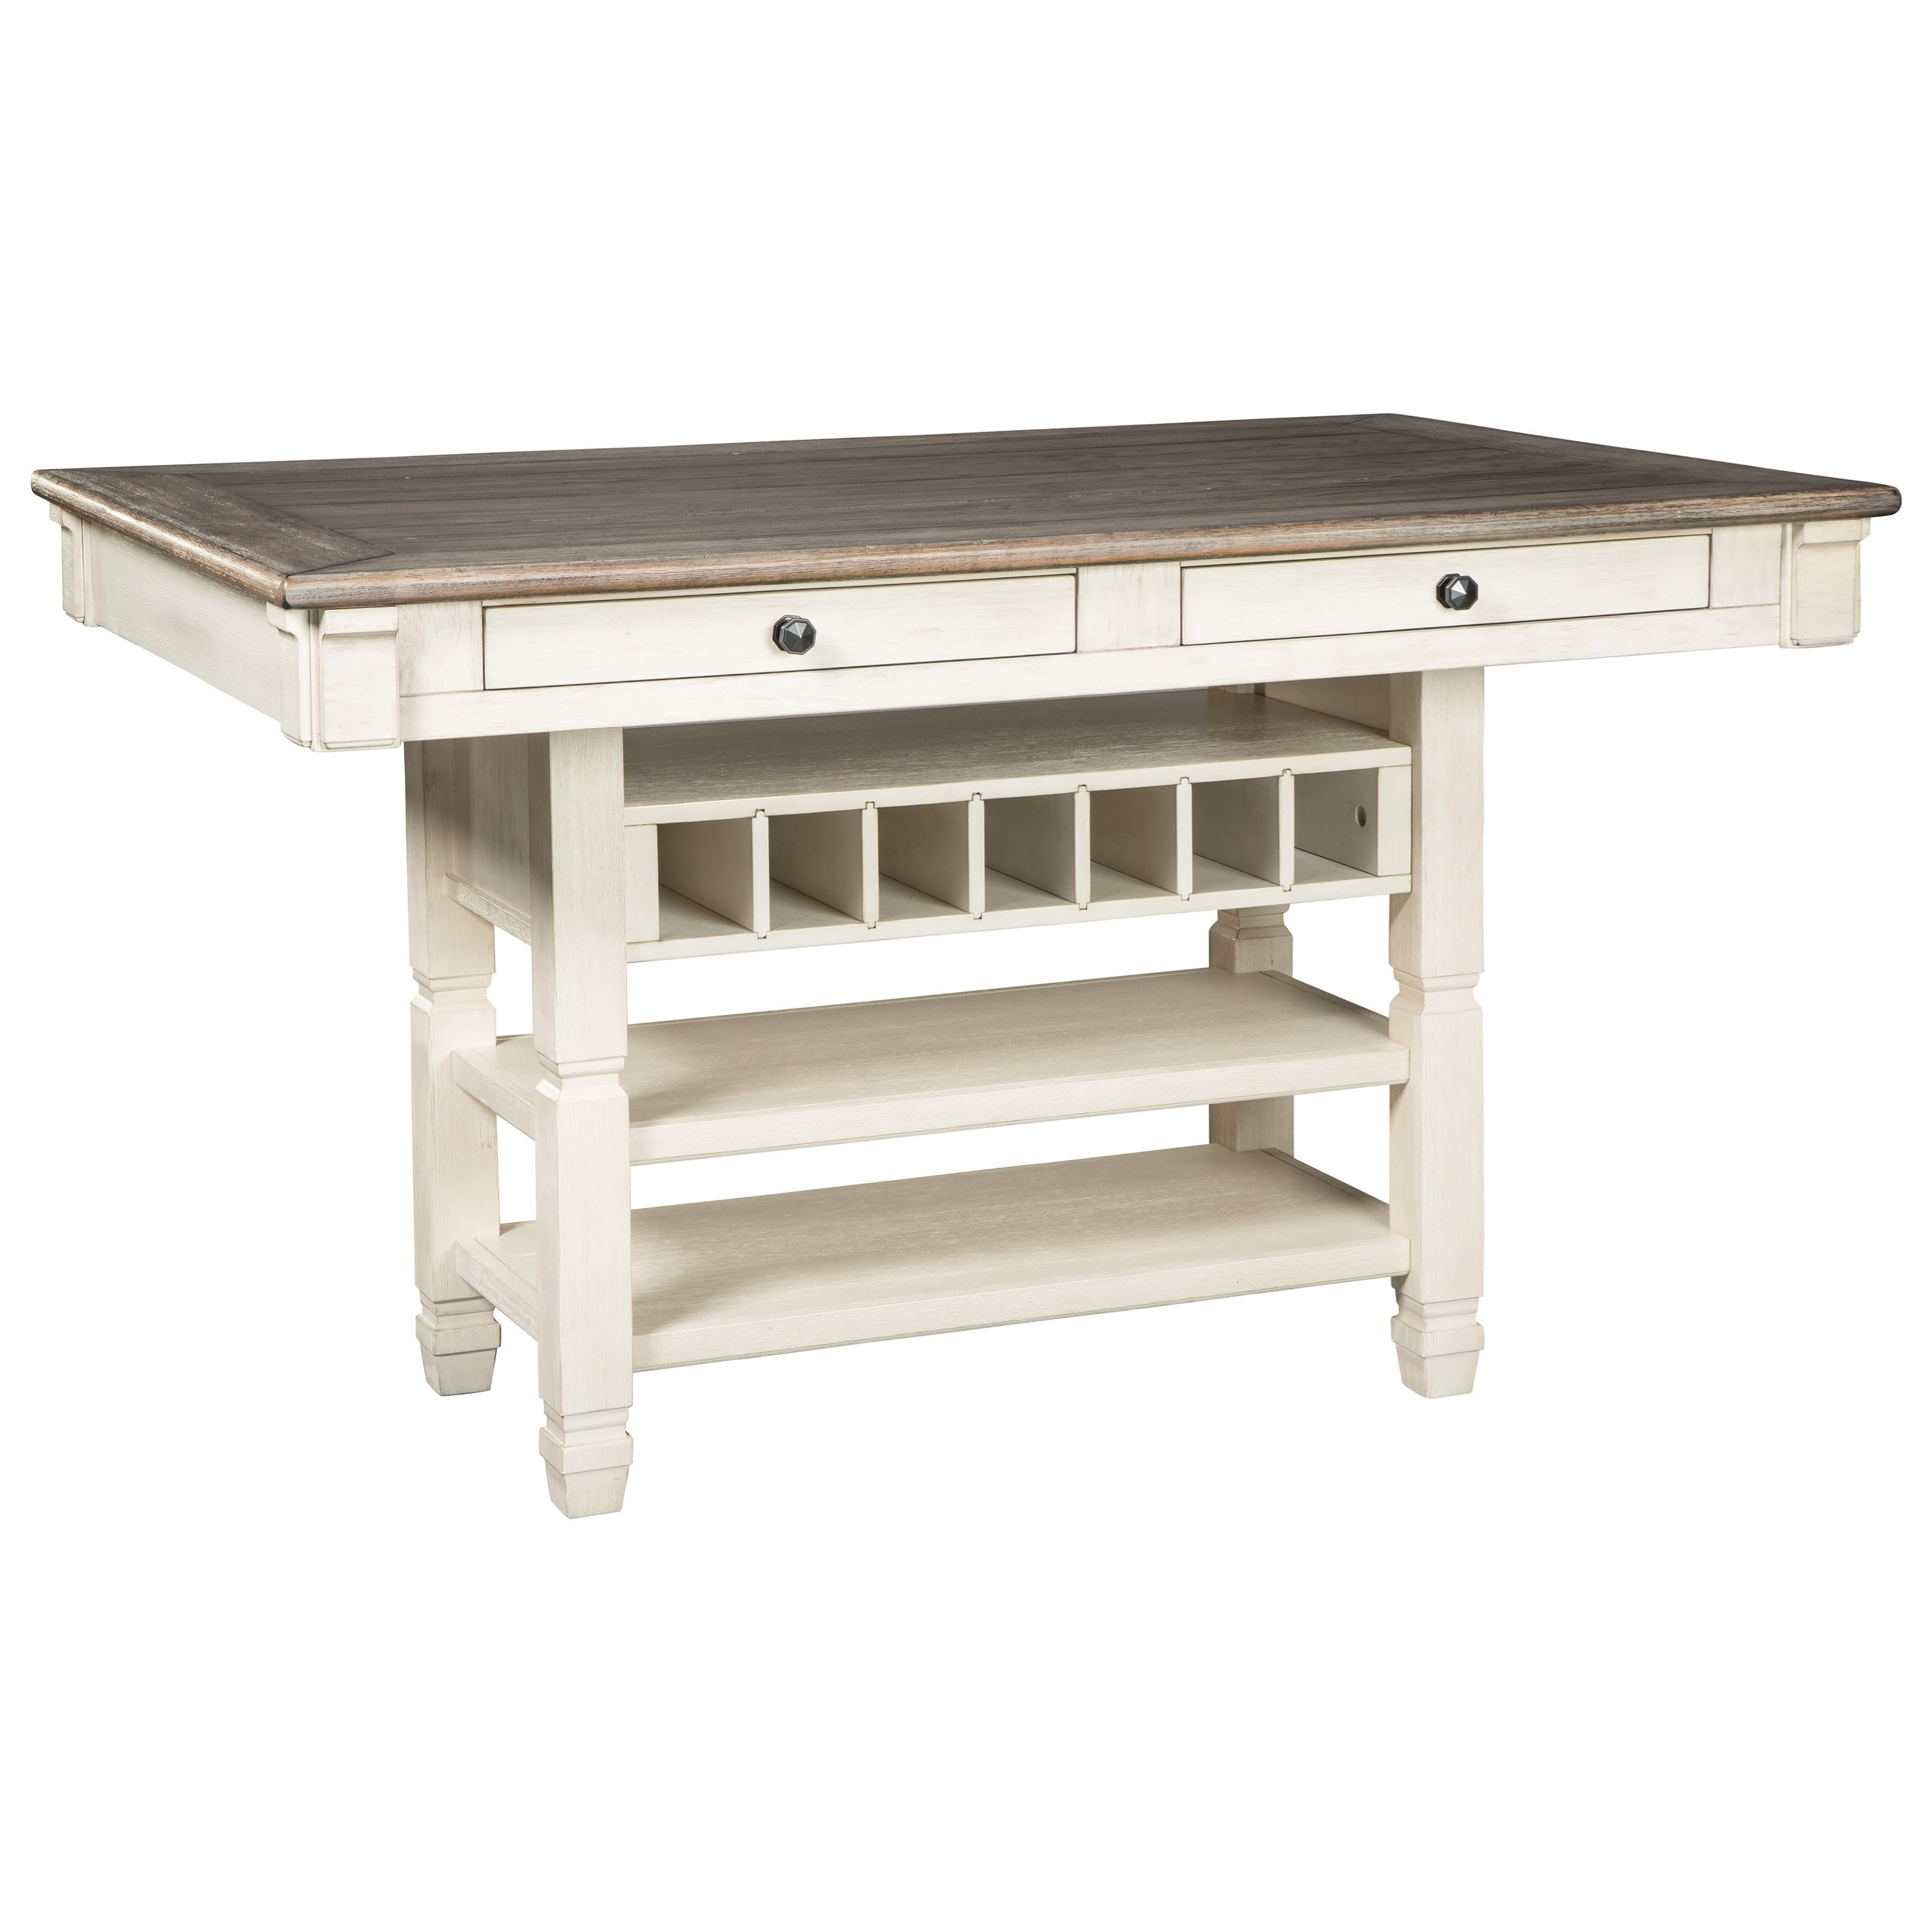 Square Dining Table With Storage Signature Design By Ashley Bolanburg D647 32 Relaxed